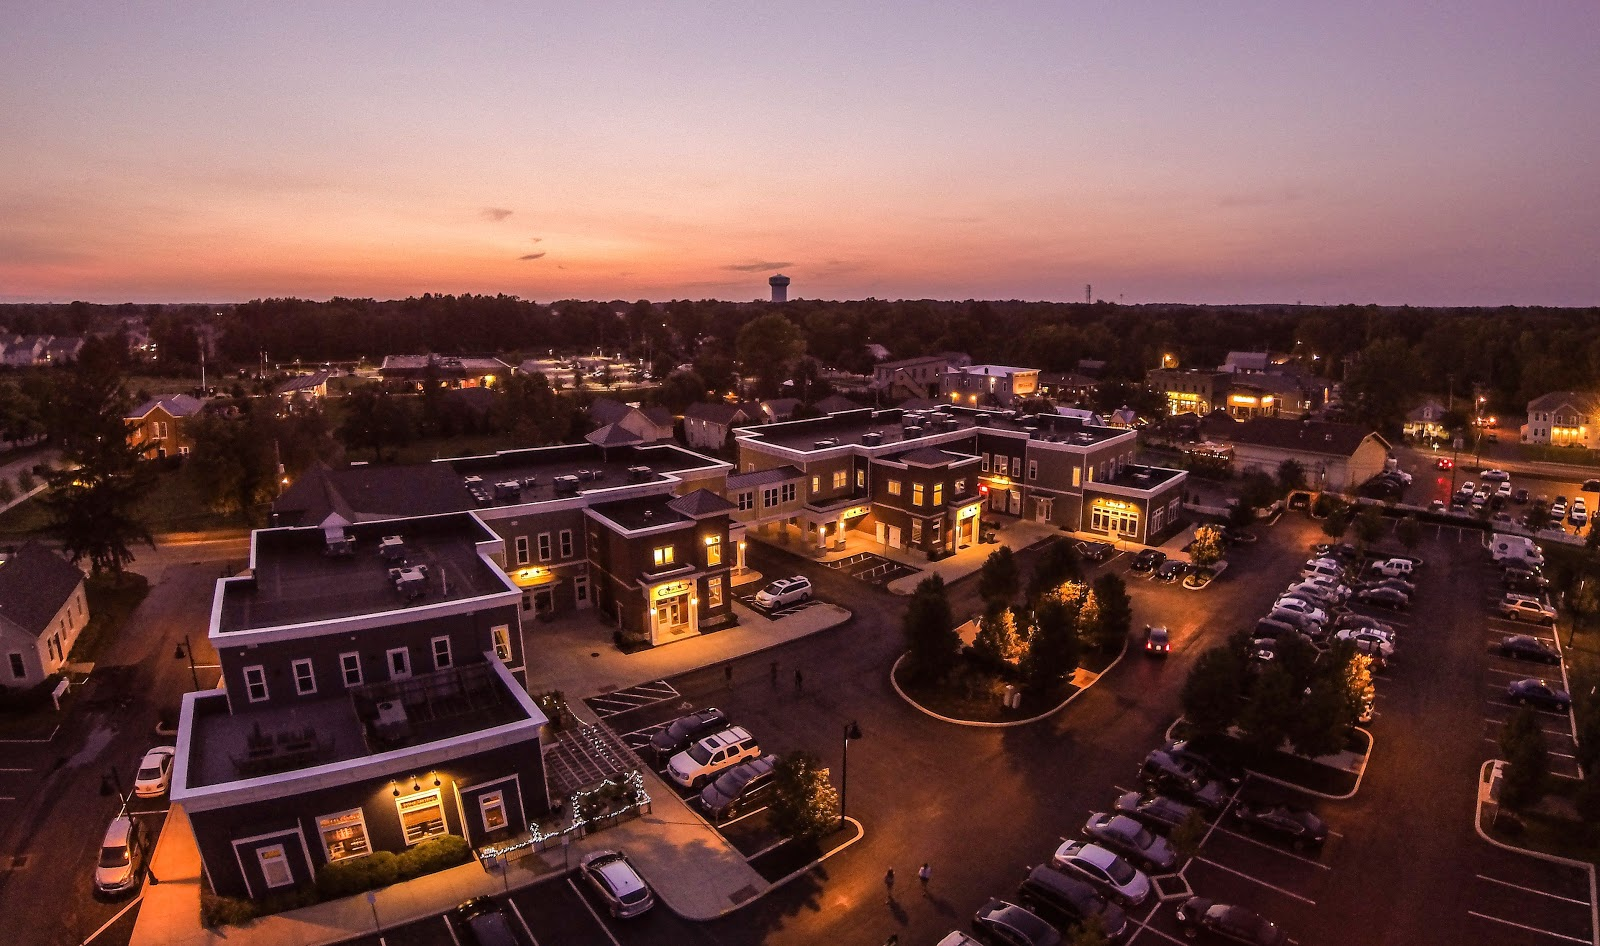 This is a sunset view of Powell Ohio. It is a great place to find a great cup of coffee.